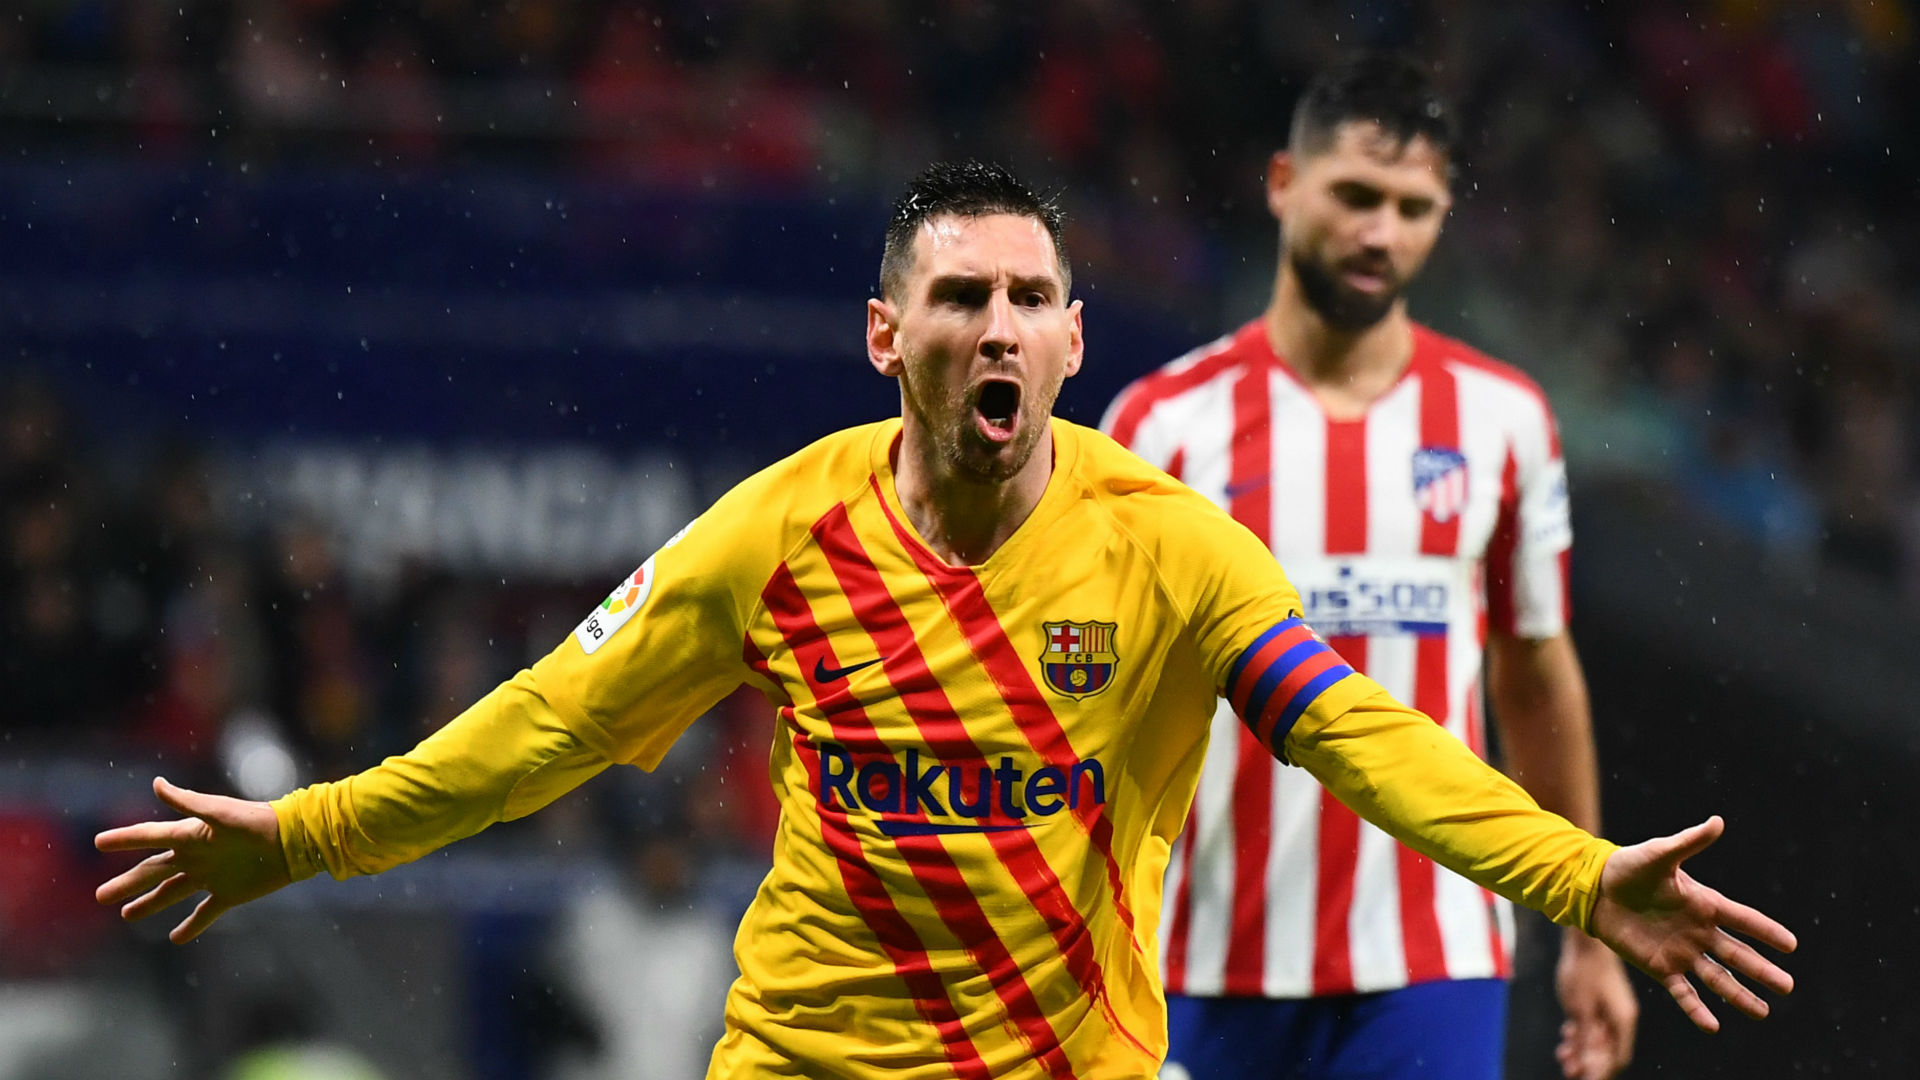 Atletico Madrid 0-1 Barcelona: Messi nets late winner to put Barca top of LaLiga